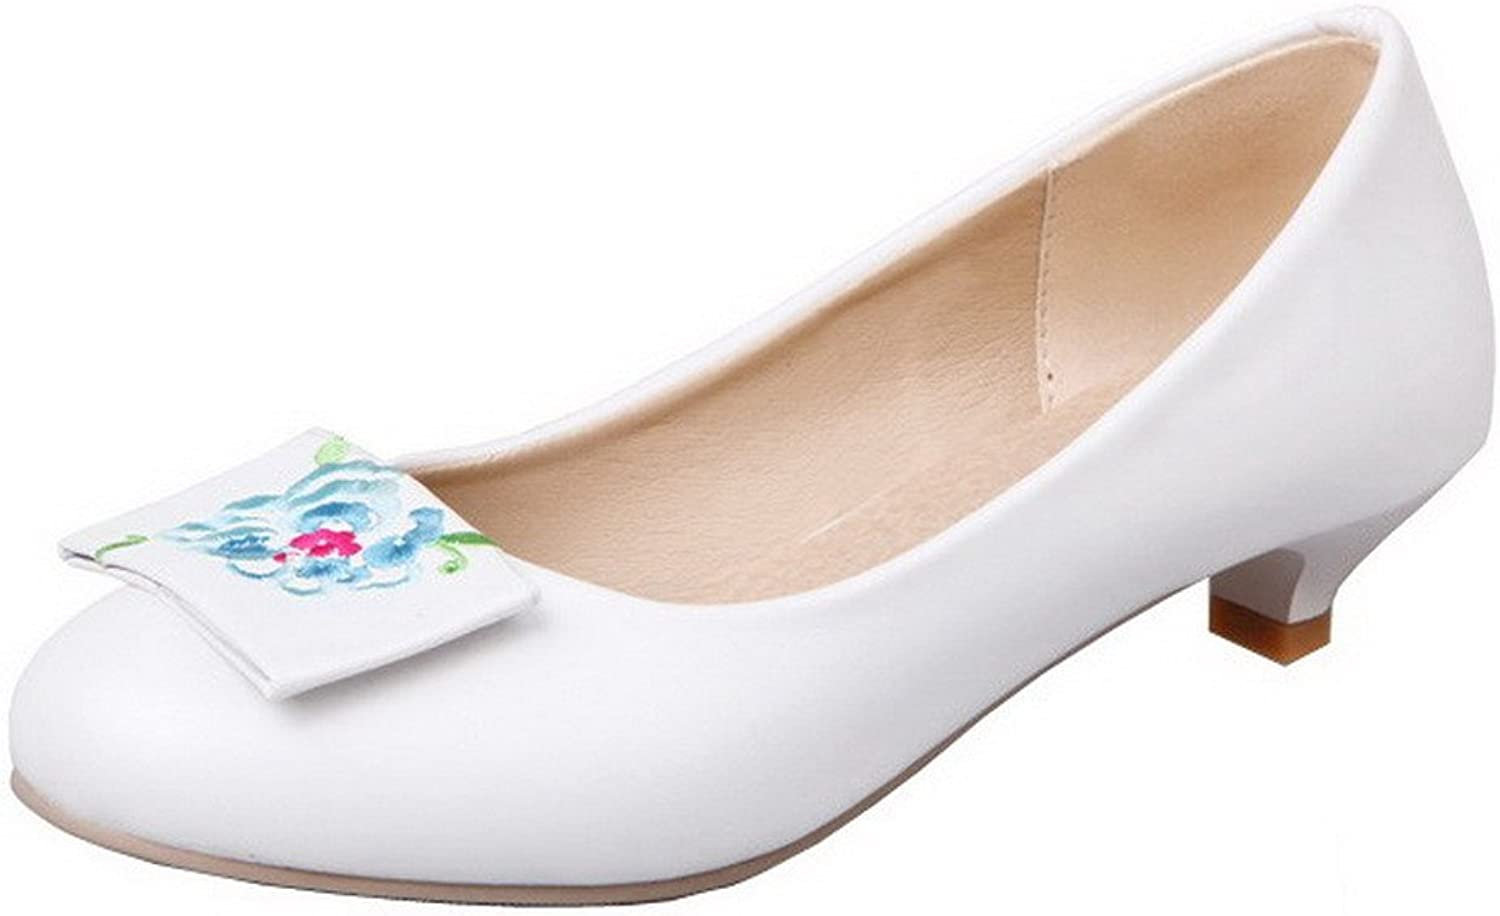 WeenFashion Women's Low-Heels PU Embroidered Pull-On Round-Toe Pumps-shoes